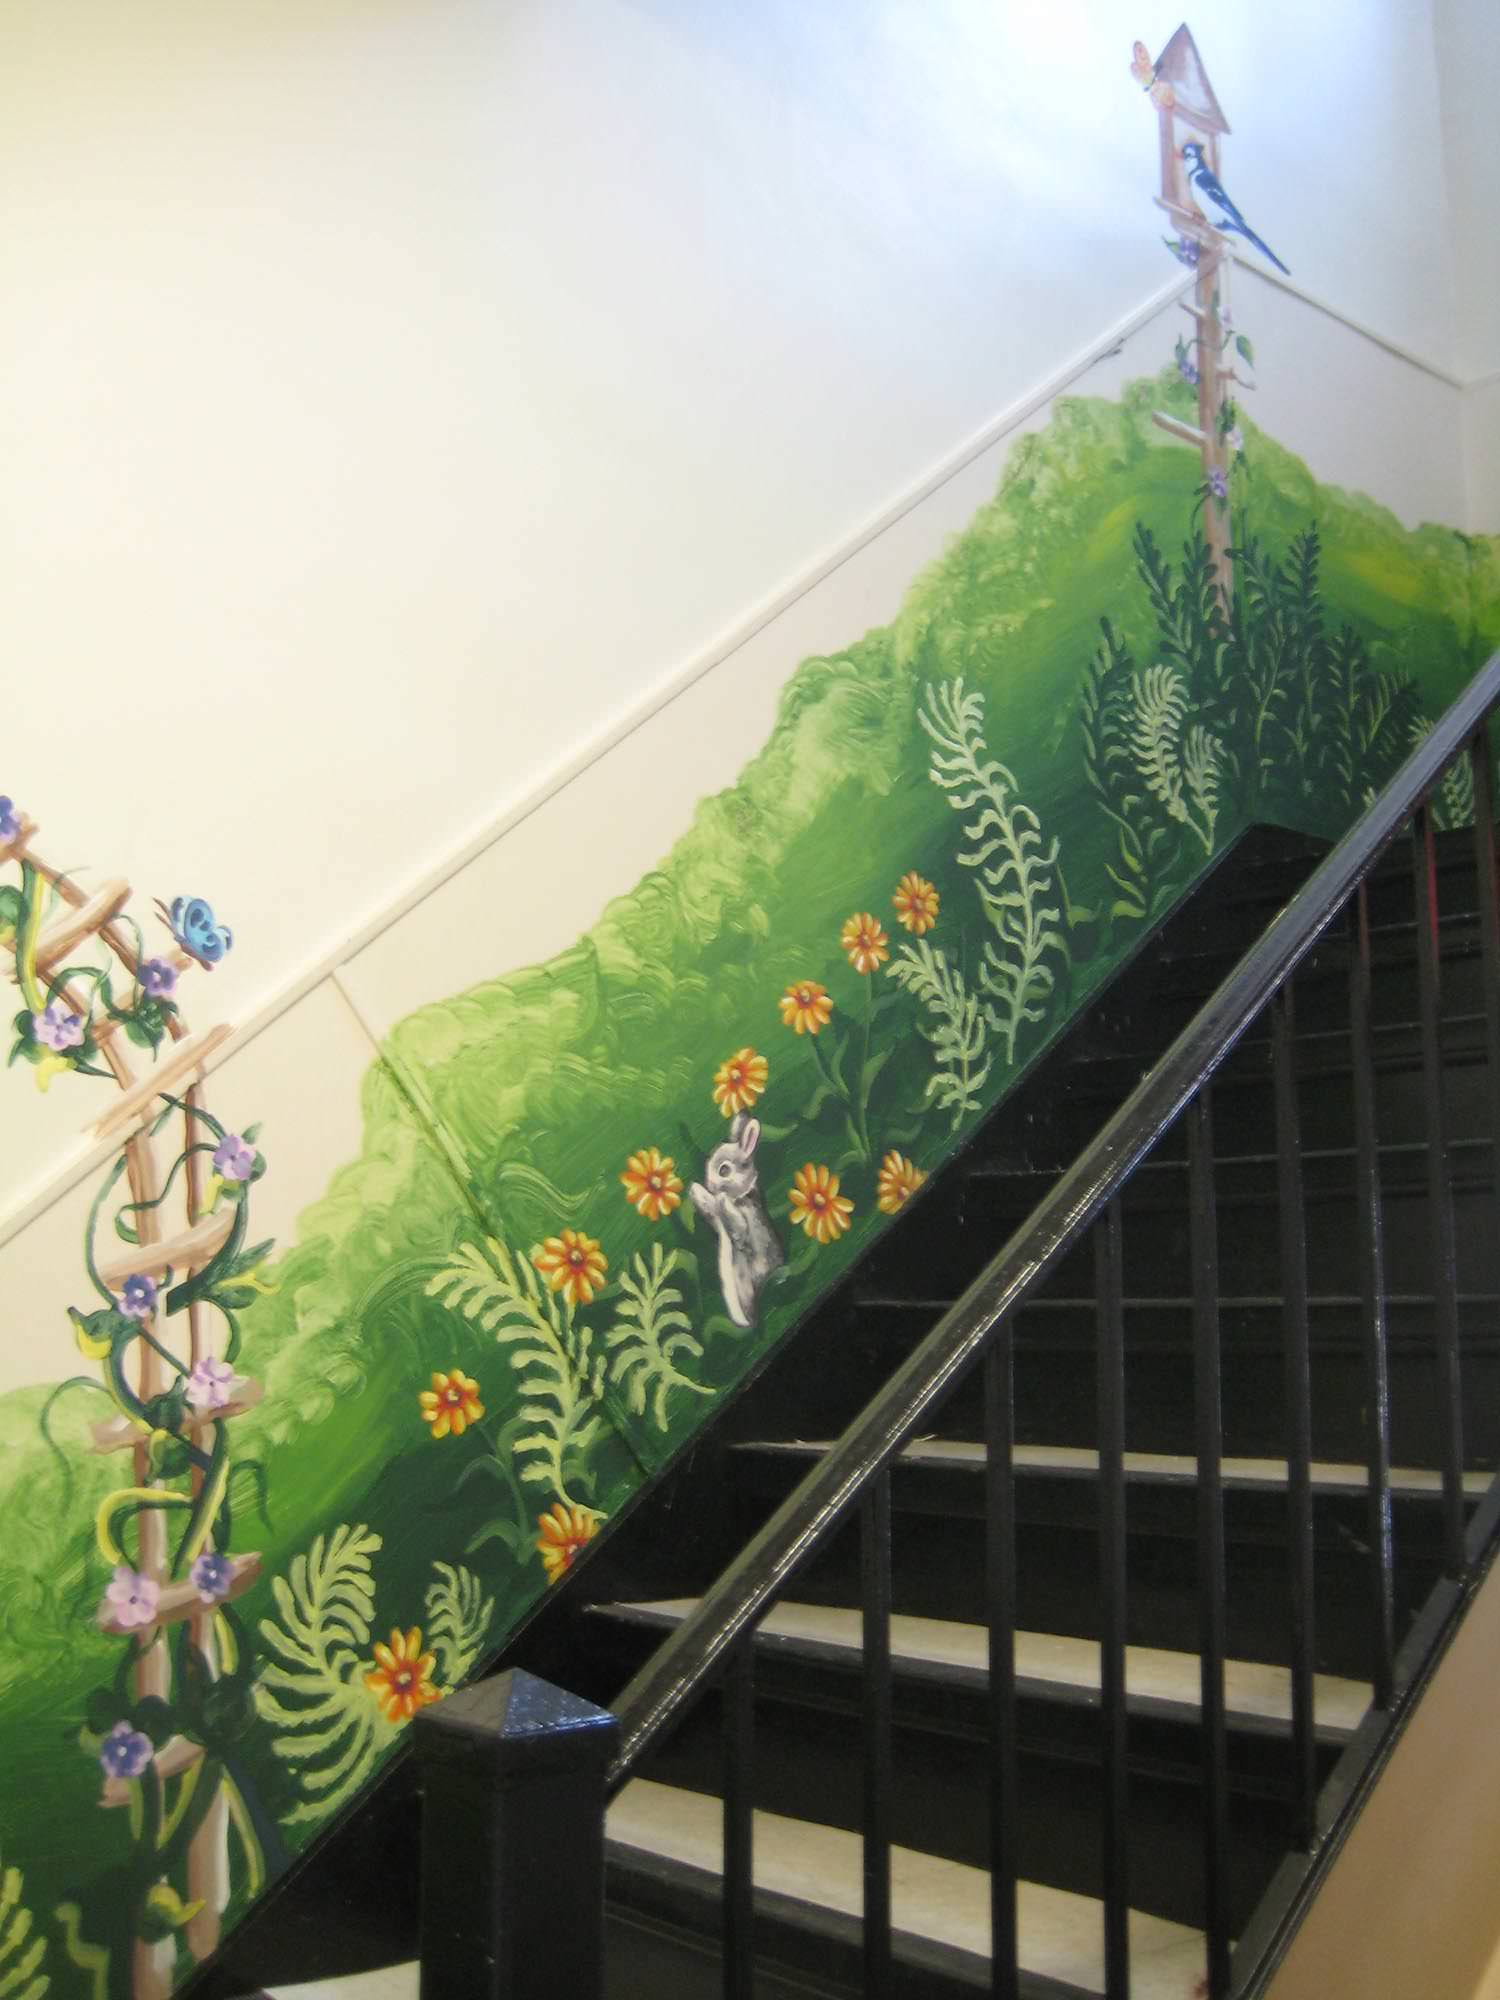 Julie Dickerson, Mural at Womanspace women's shelter, 2010